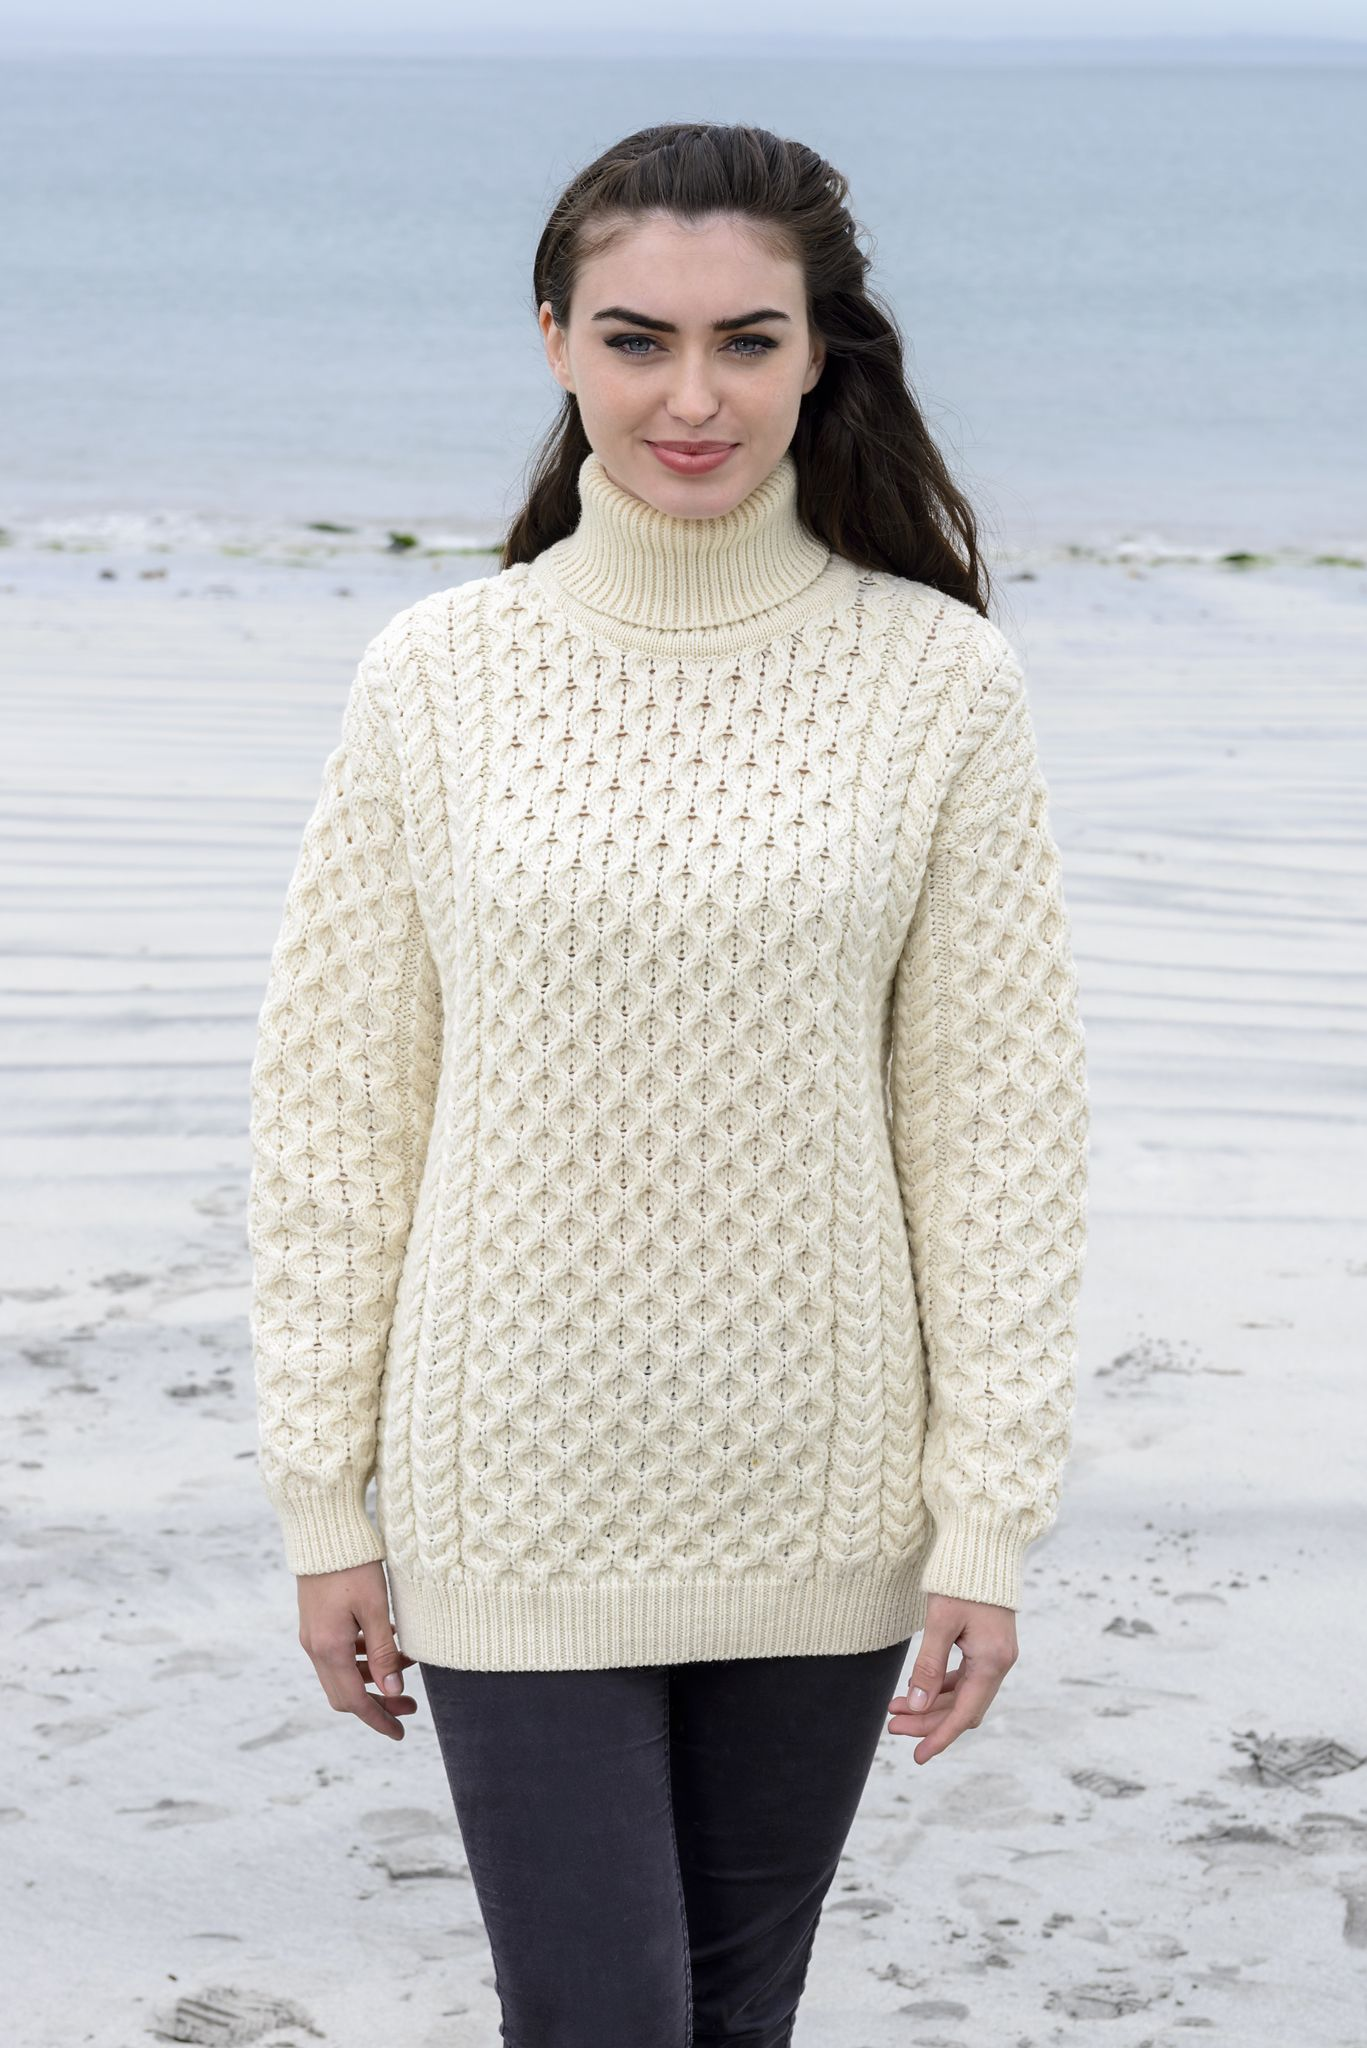 635a3fc5e9 Women s Oversized Honeycomb Turtleneck Sweater This merino wool honeycomb  sweater is a practical yet stylish sweater